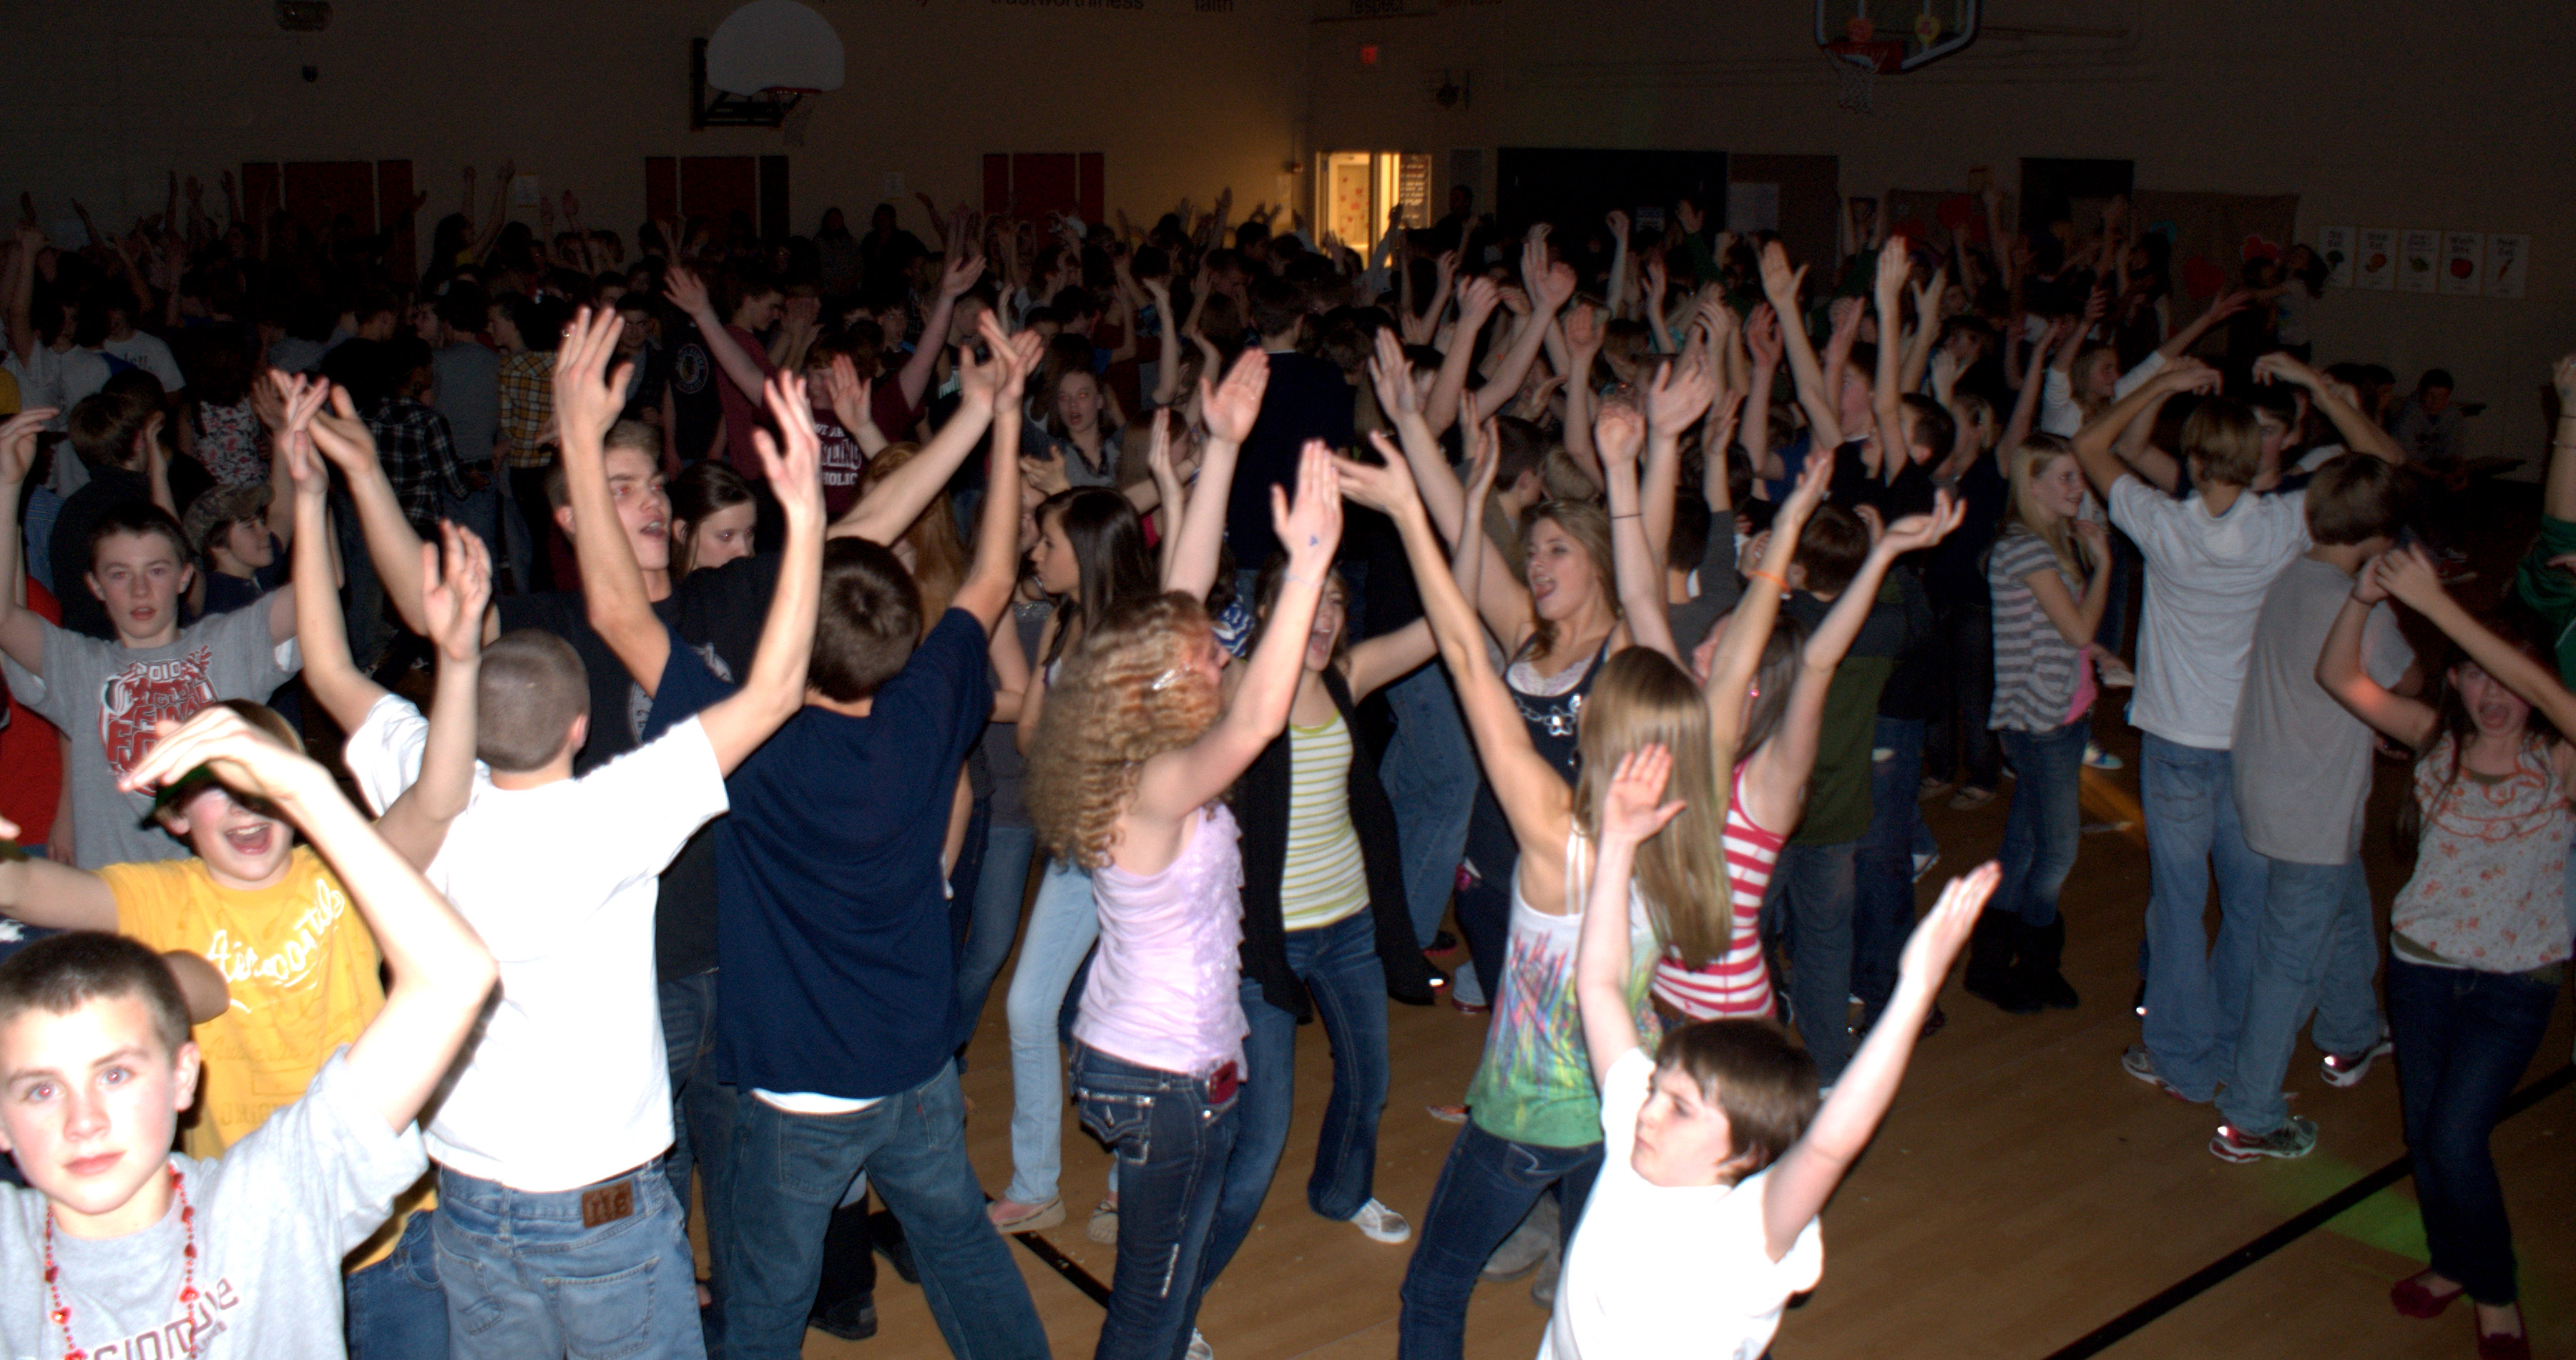 Middle School Dance Songs That Get Better In College